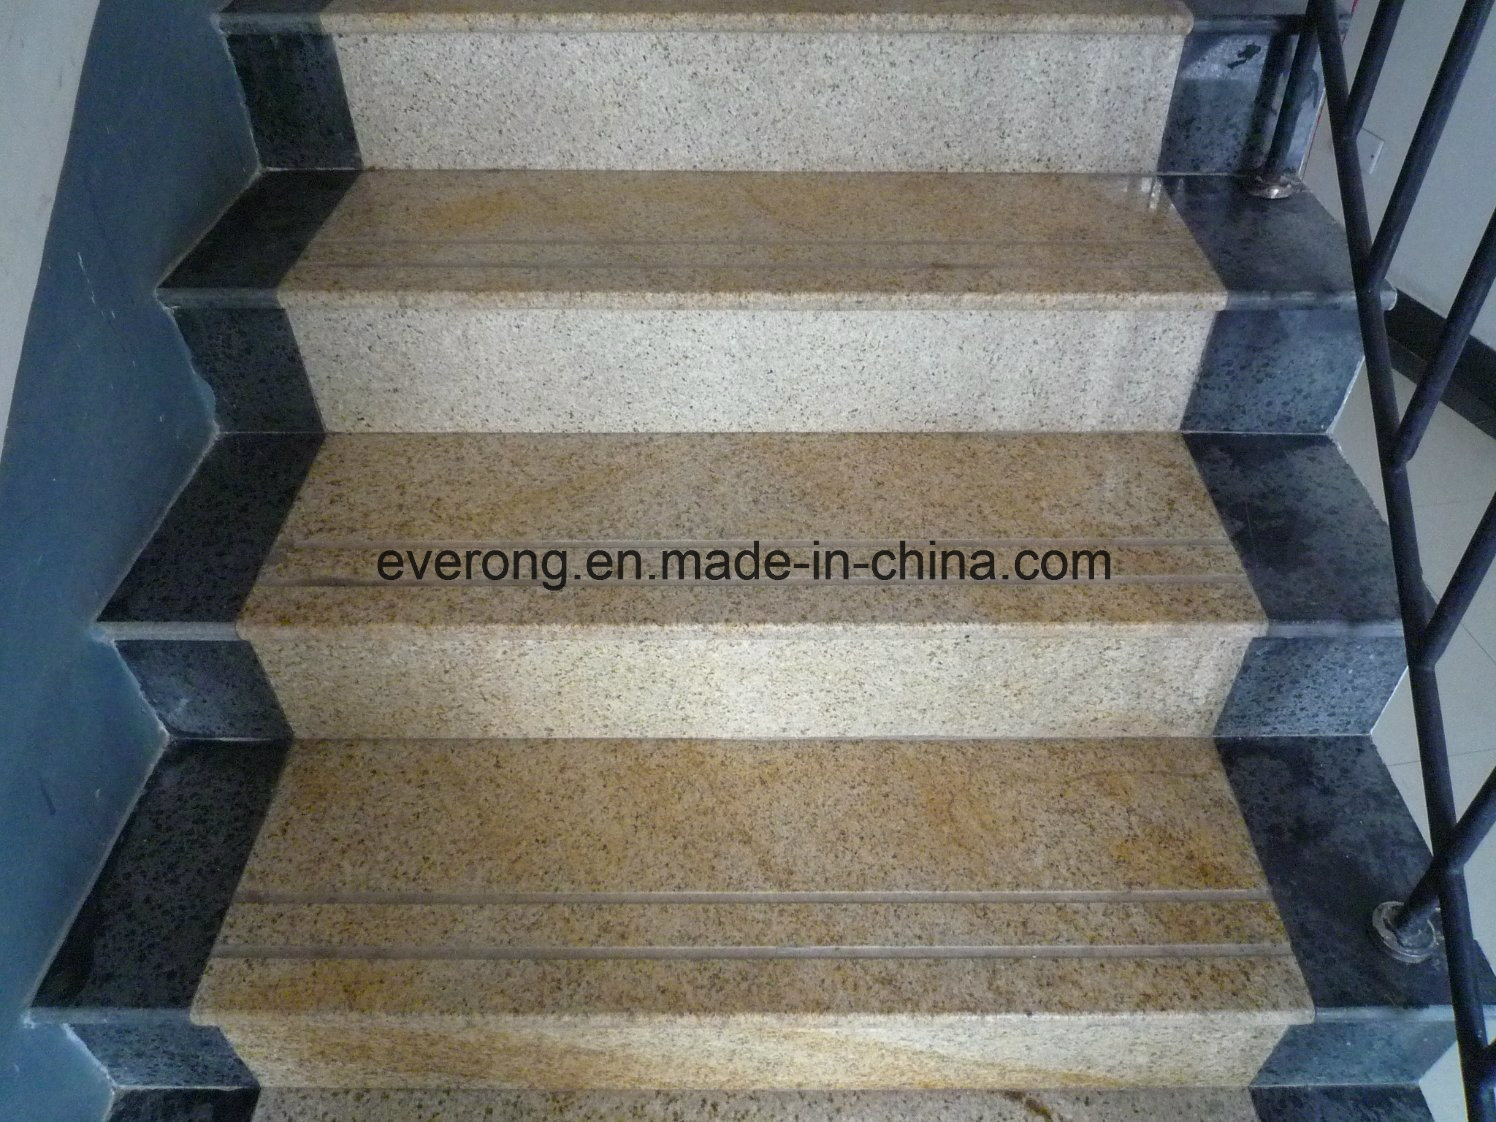 China Mixed Color Granite Design Tile Full Polished Glazed Step | Granite Design For Stairs | Floor | Front Wall | Bedroom | Grenite Pathar | Sunny